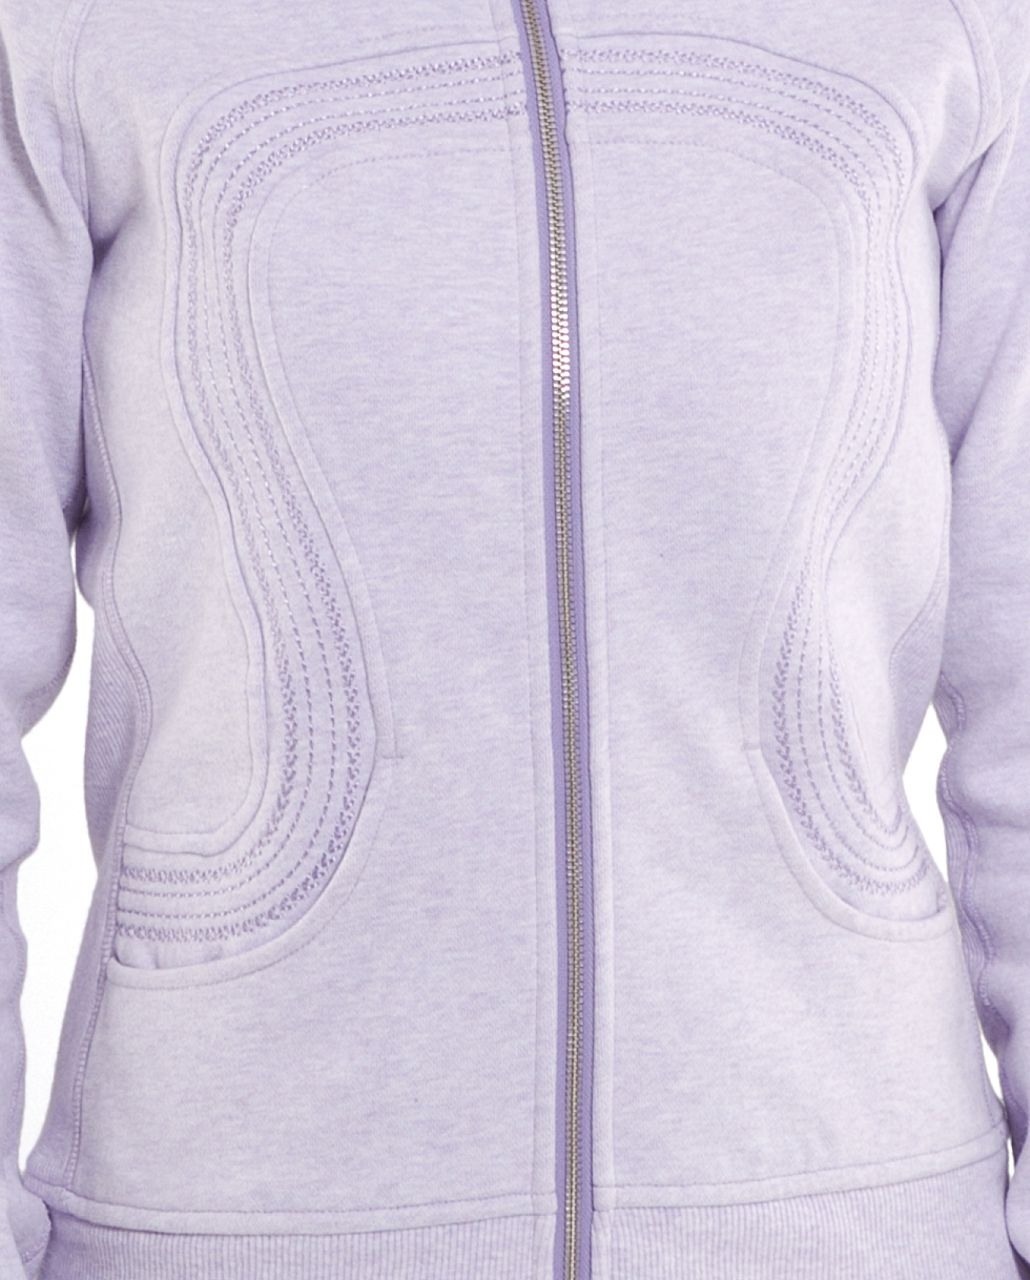 Lululemon Cuddle Up Jacket - Heathered Lilac